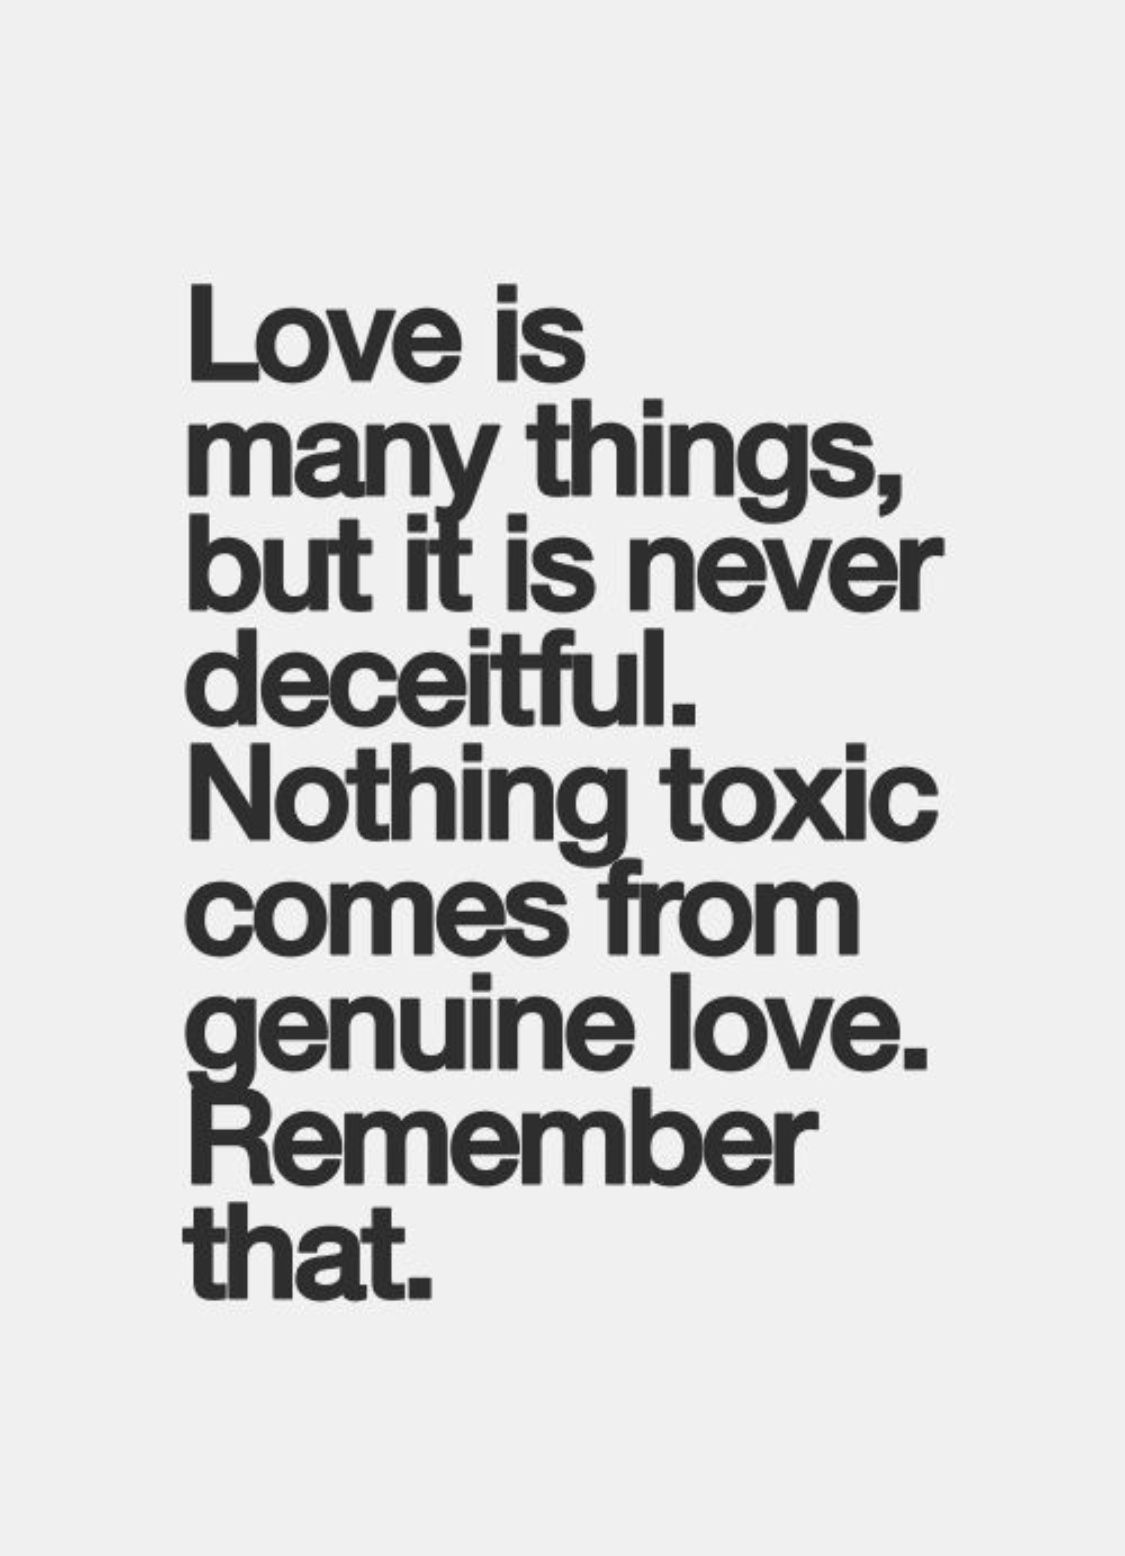 That S Not Love Smh Encouragement Quotes Words Inspirational Quotes About Love